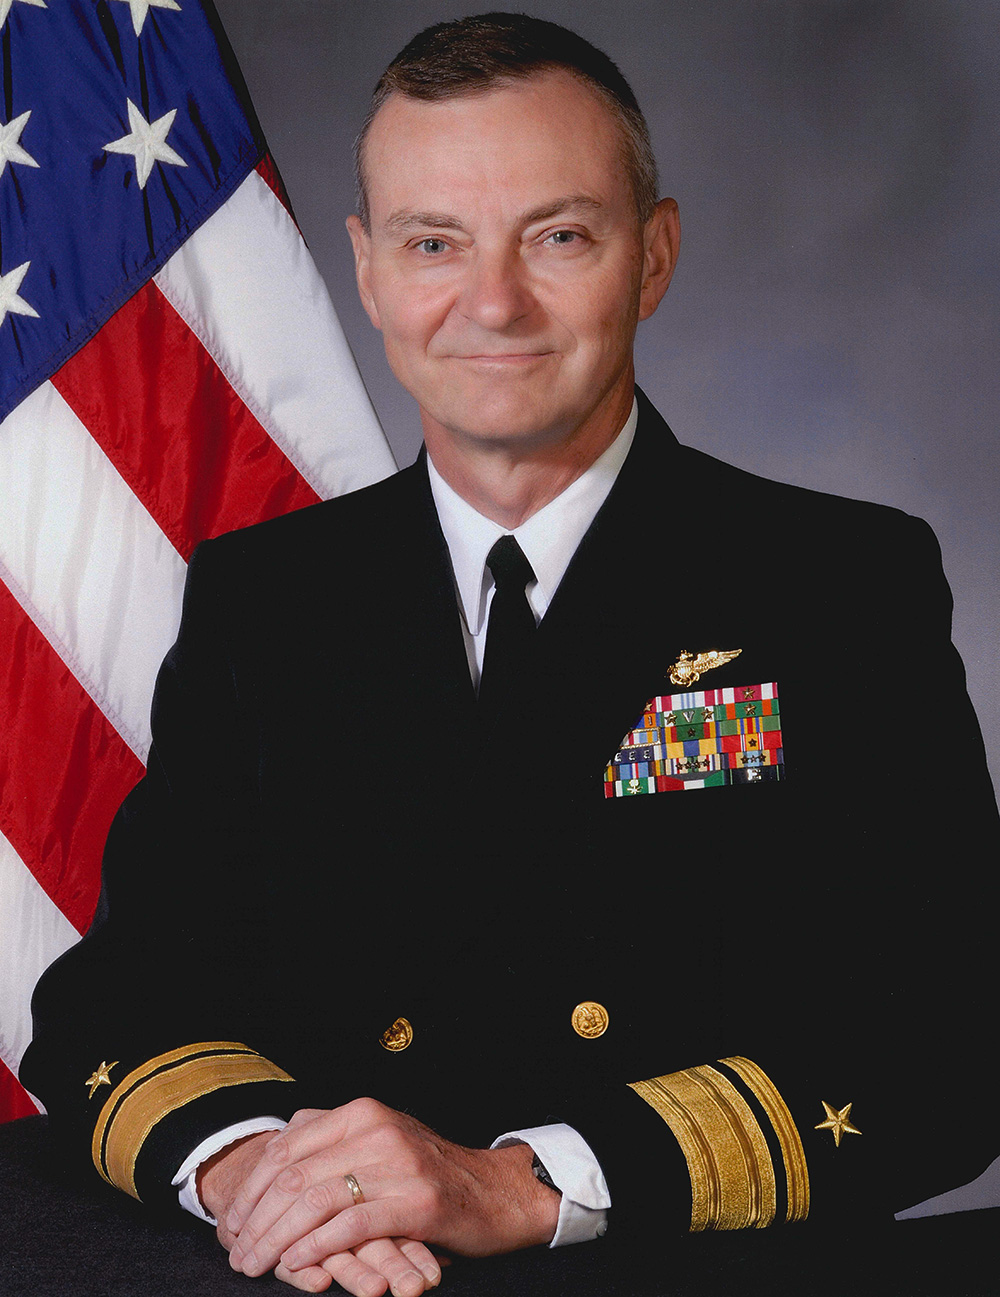 Rear Adm. Charles Smith in his Navy uniform